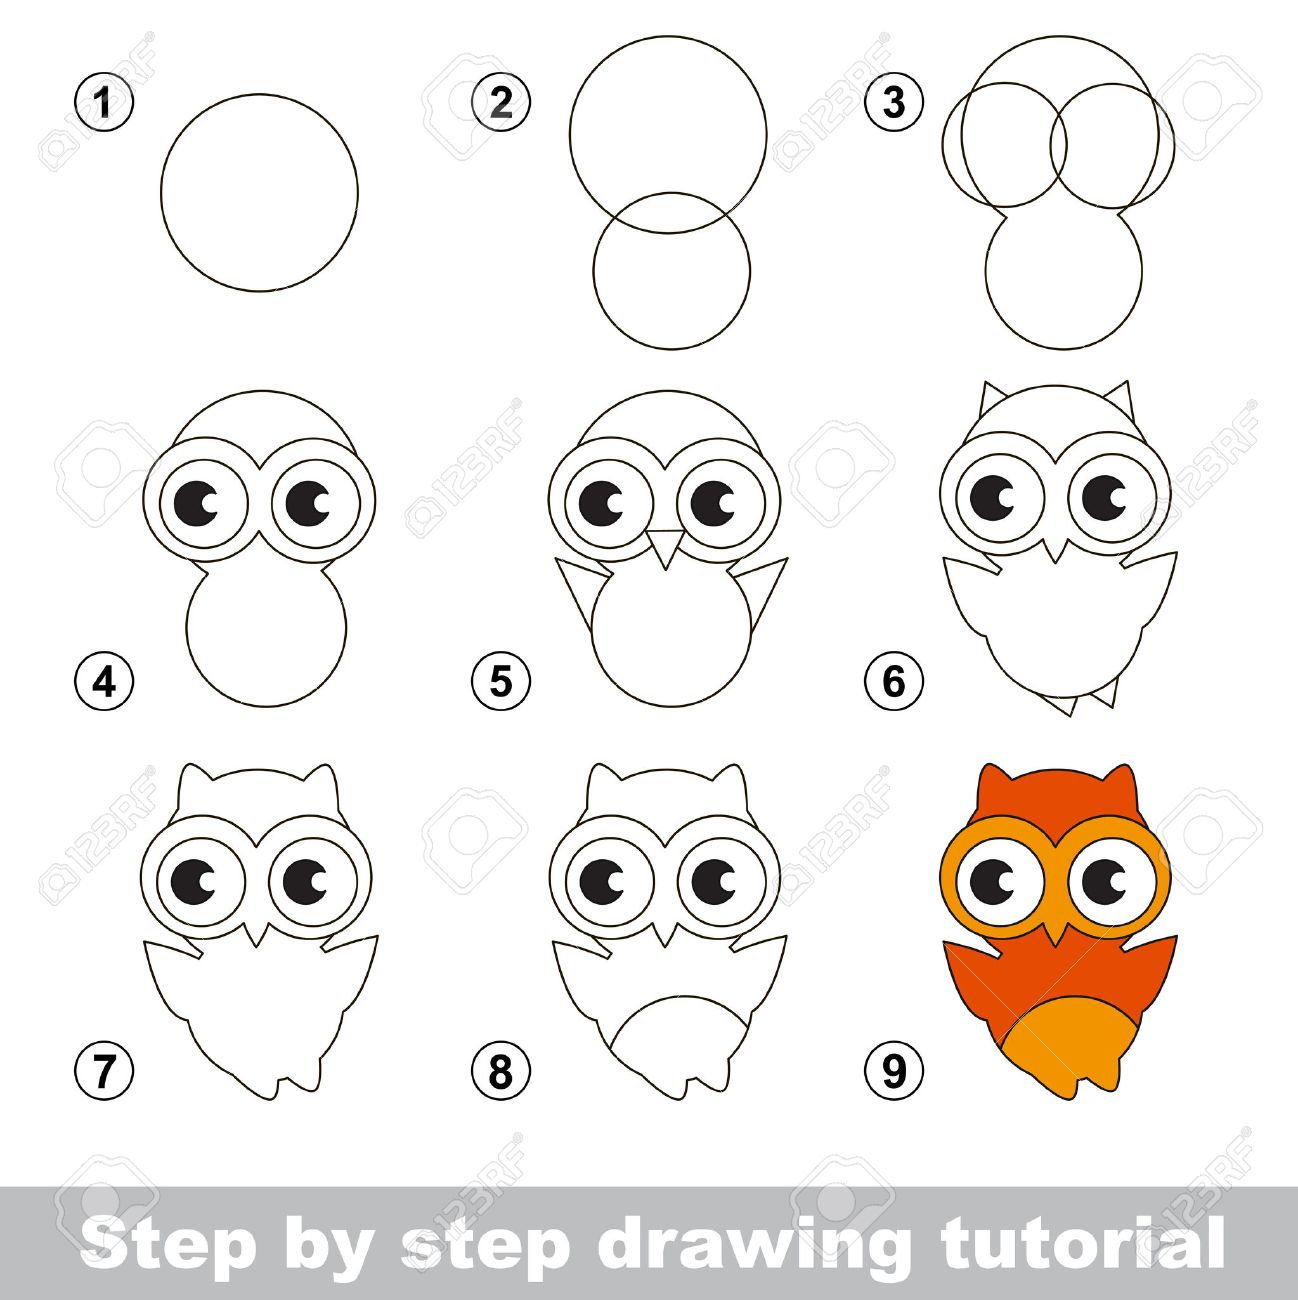 Step By Step Drawing Tutorial. Visual Game For Kids. How To Draw A ...